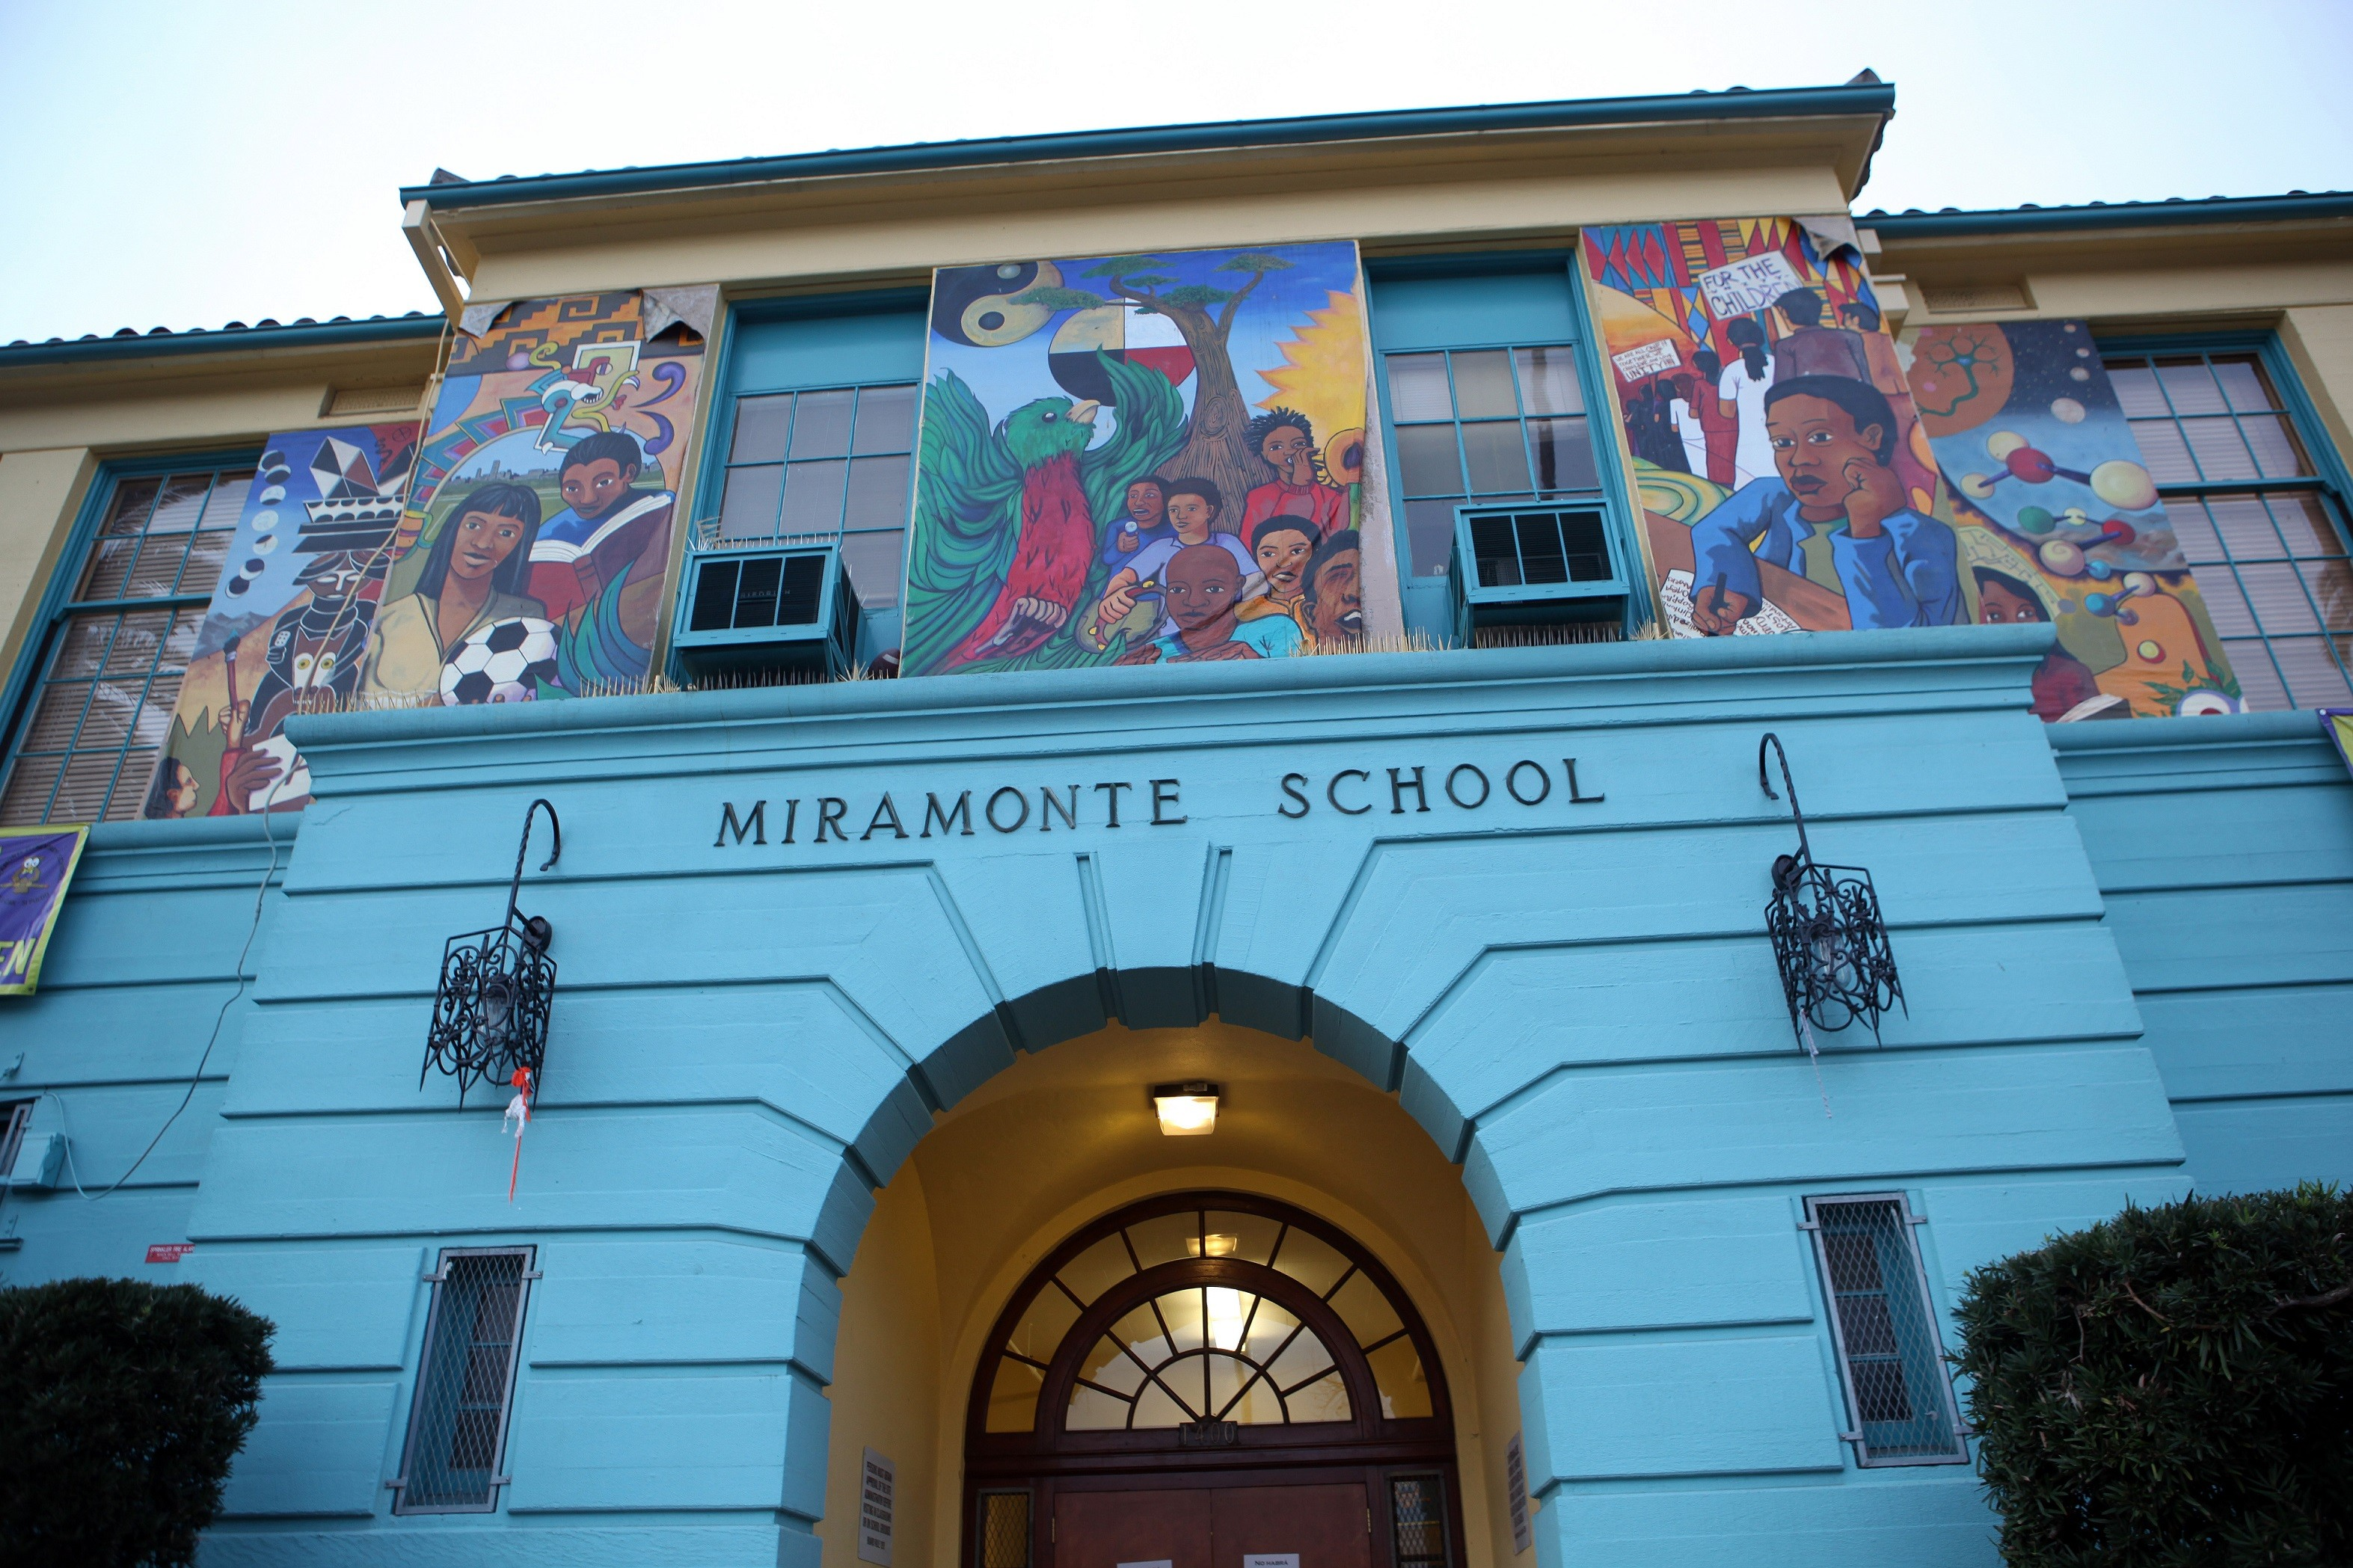 Blue Miramonte Elementary school with murals